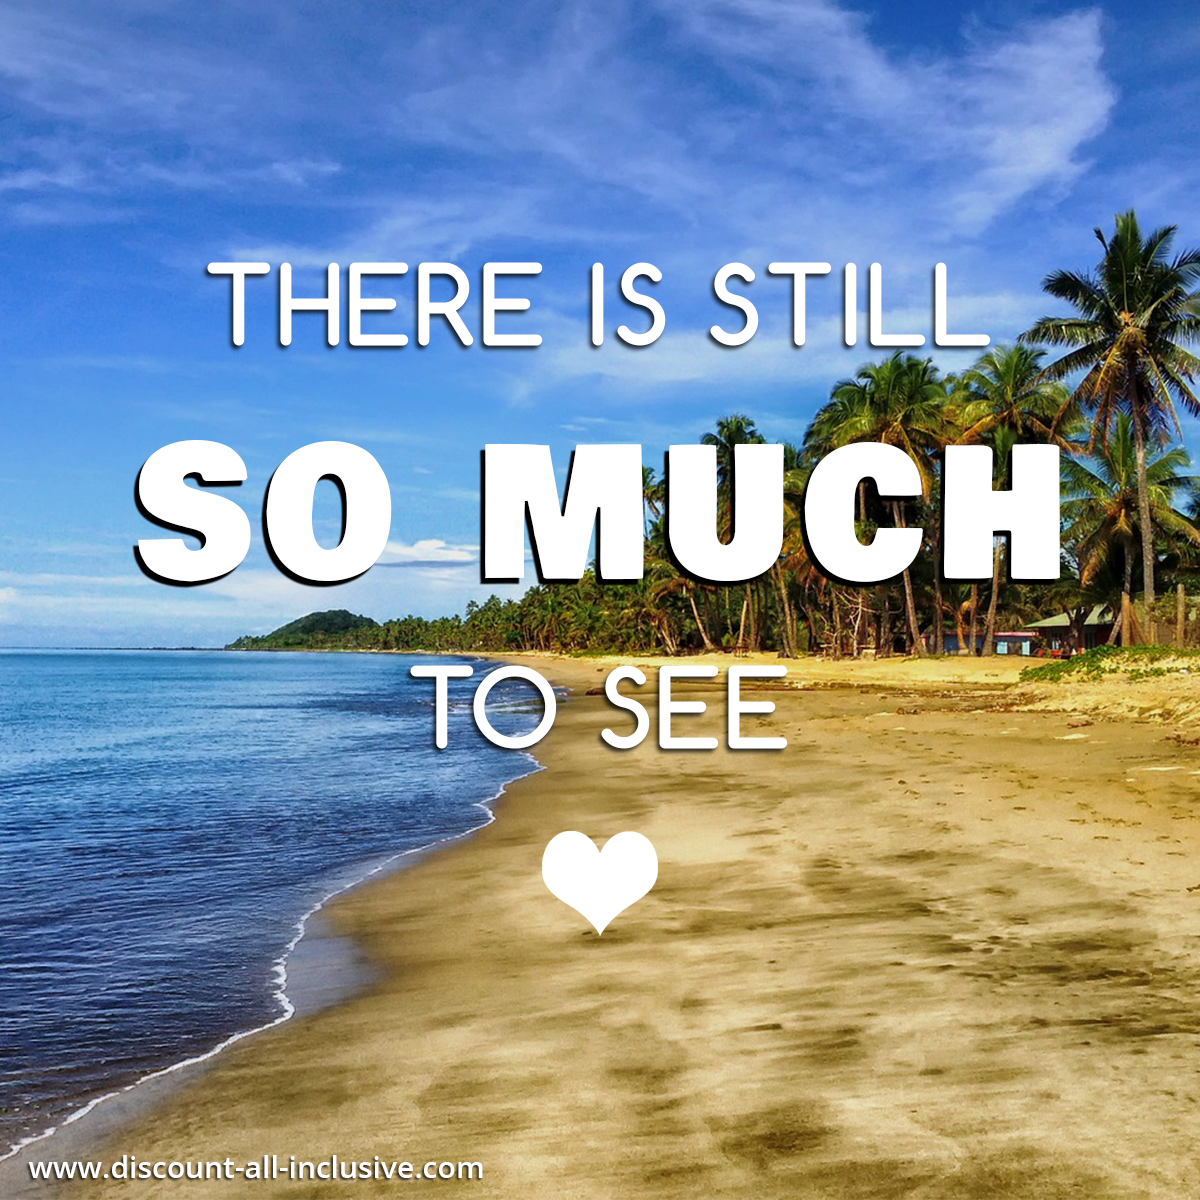 Vacation Quotes There Is Still So Much To Seetravel Vacation Beach Go